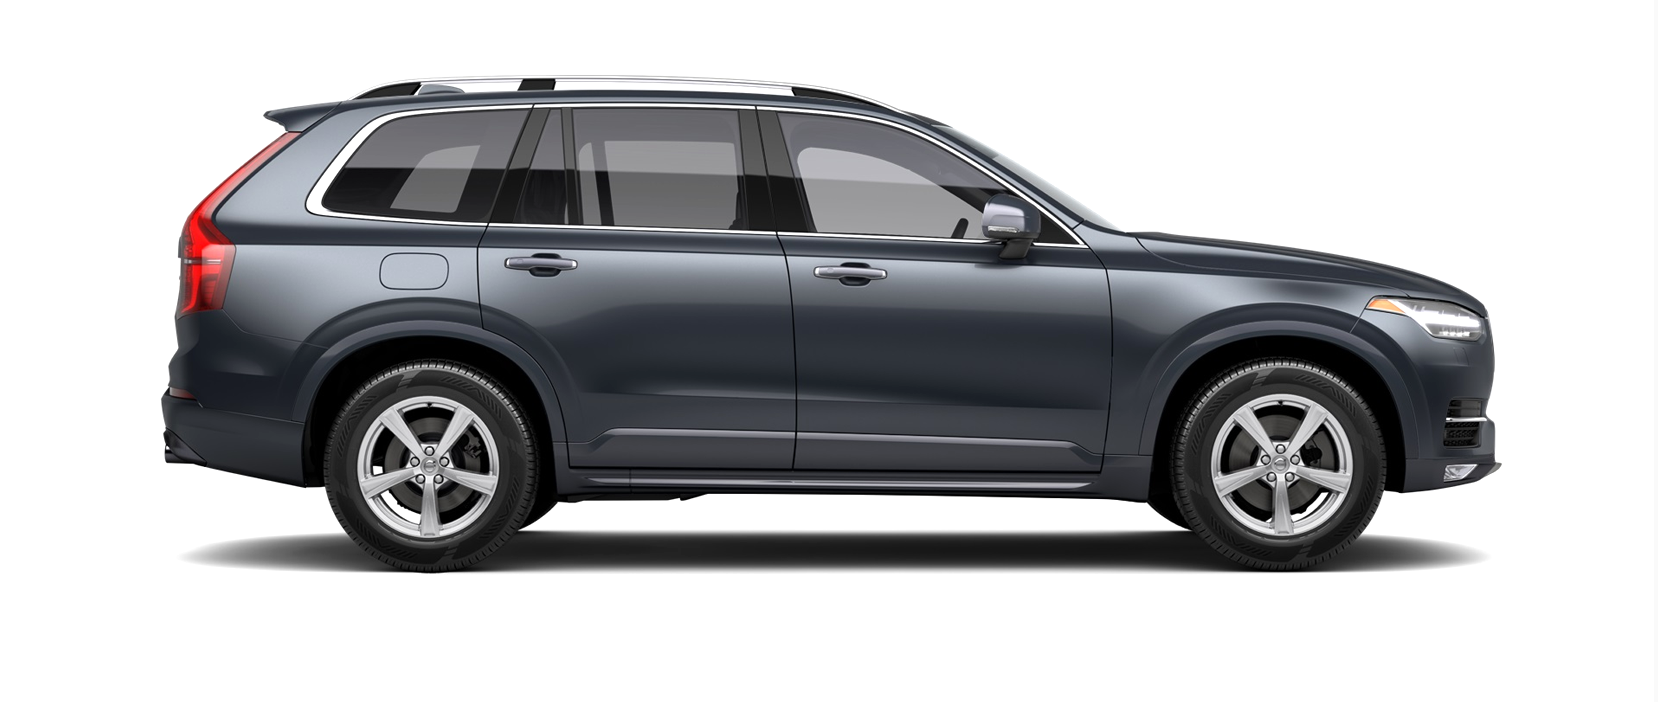 2019 Volvo XC90 T5 AWD Momentum shown